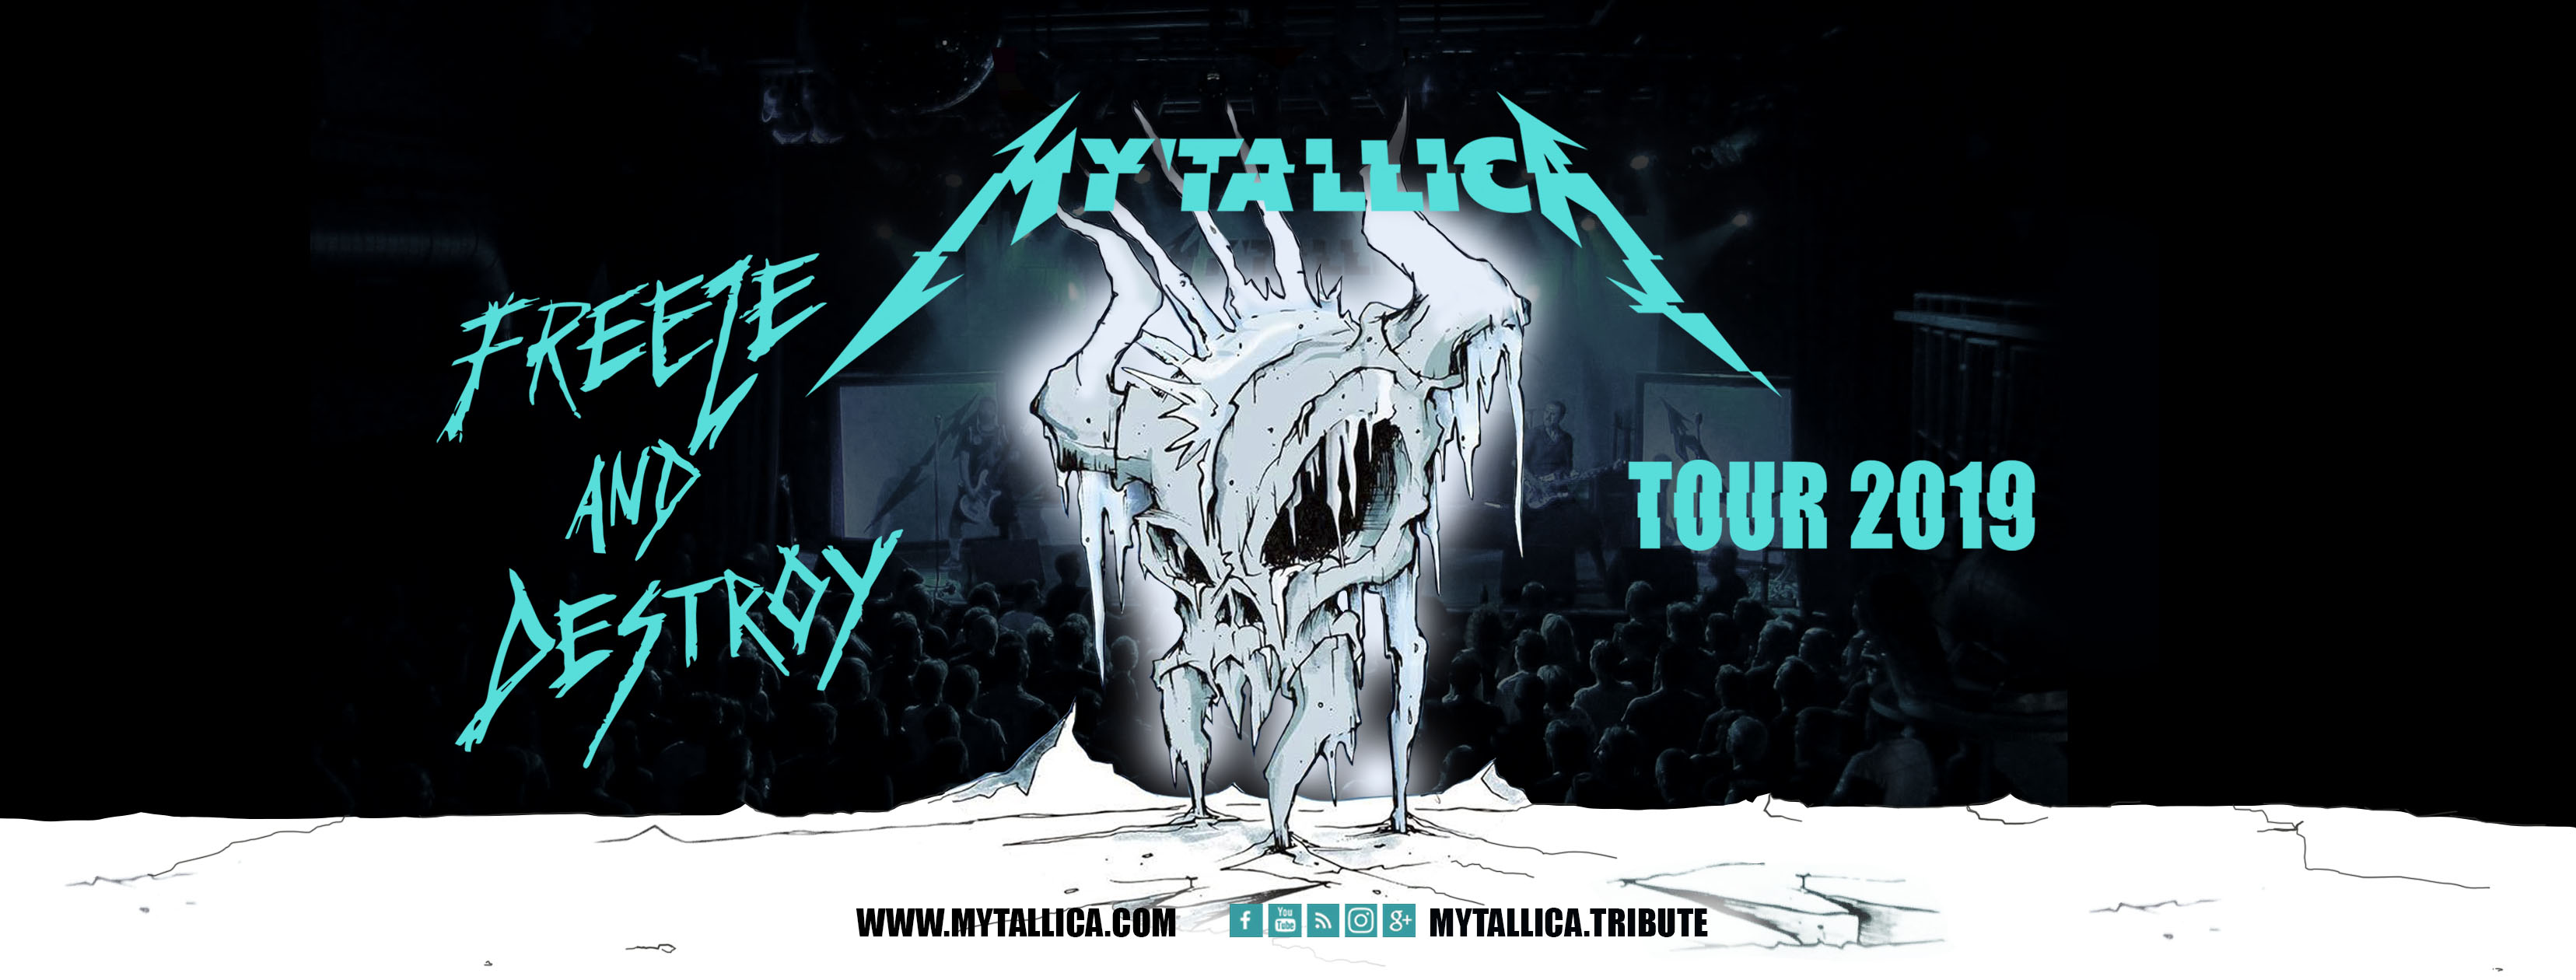 Metallica-Tribute-Band-MYTALLICA-Coverband-Tour-Freeze-And-Destroy-Antarctica-2019